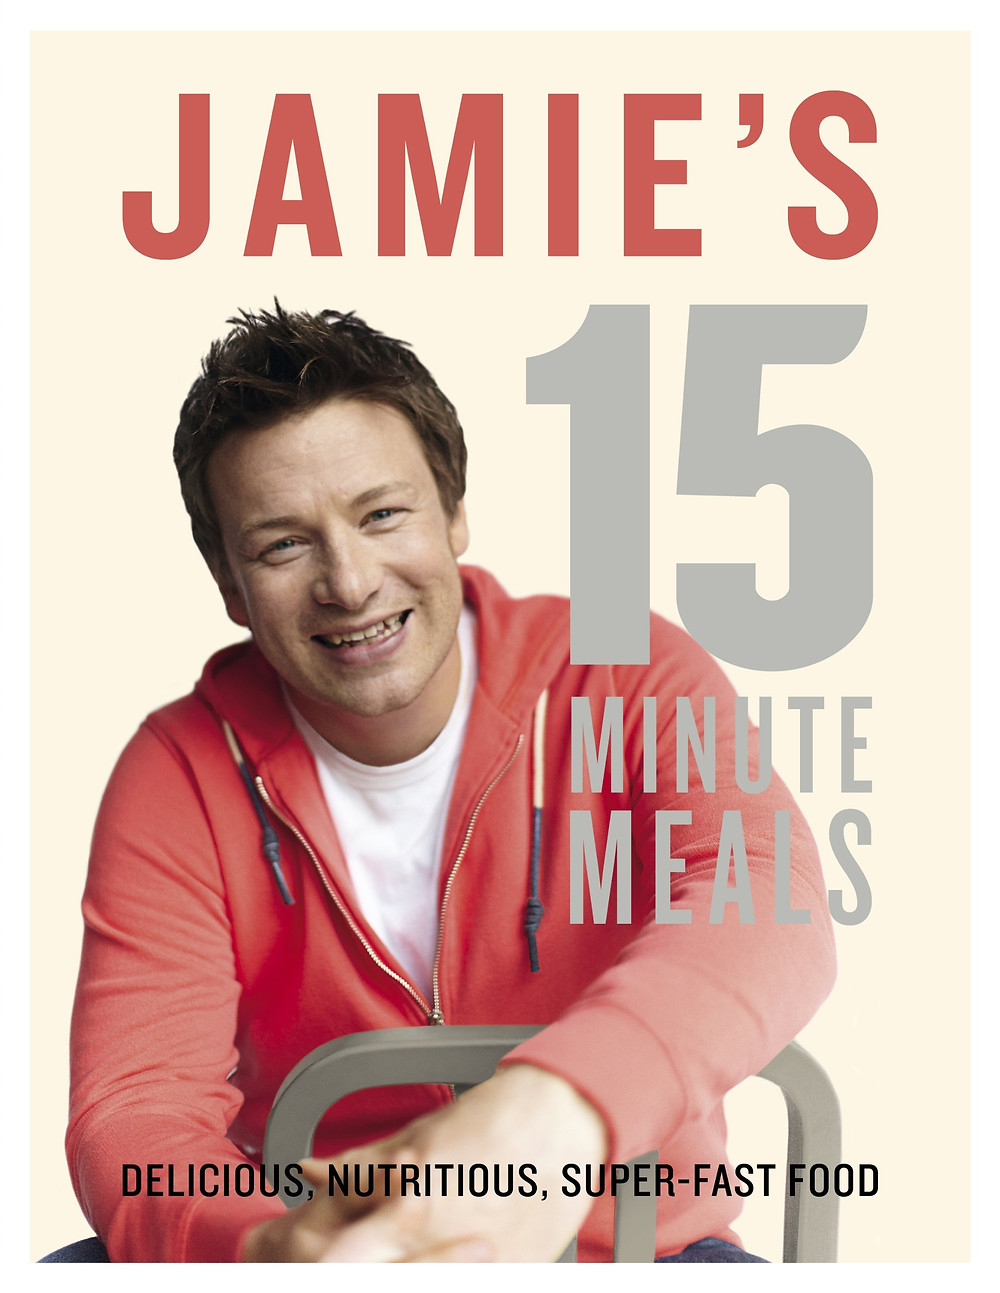 15 minute meals by Jamie Oliver